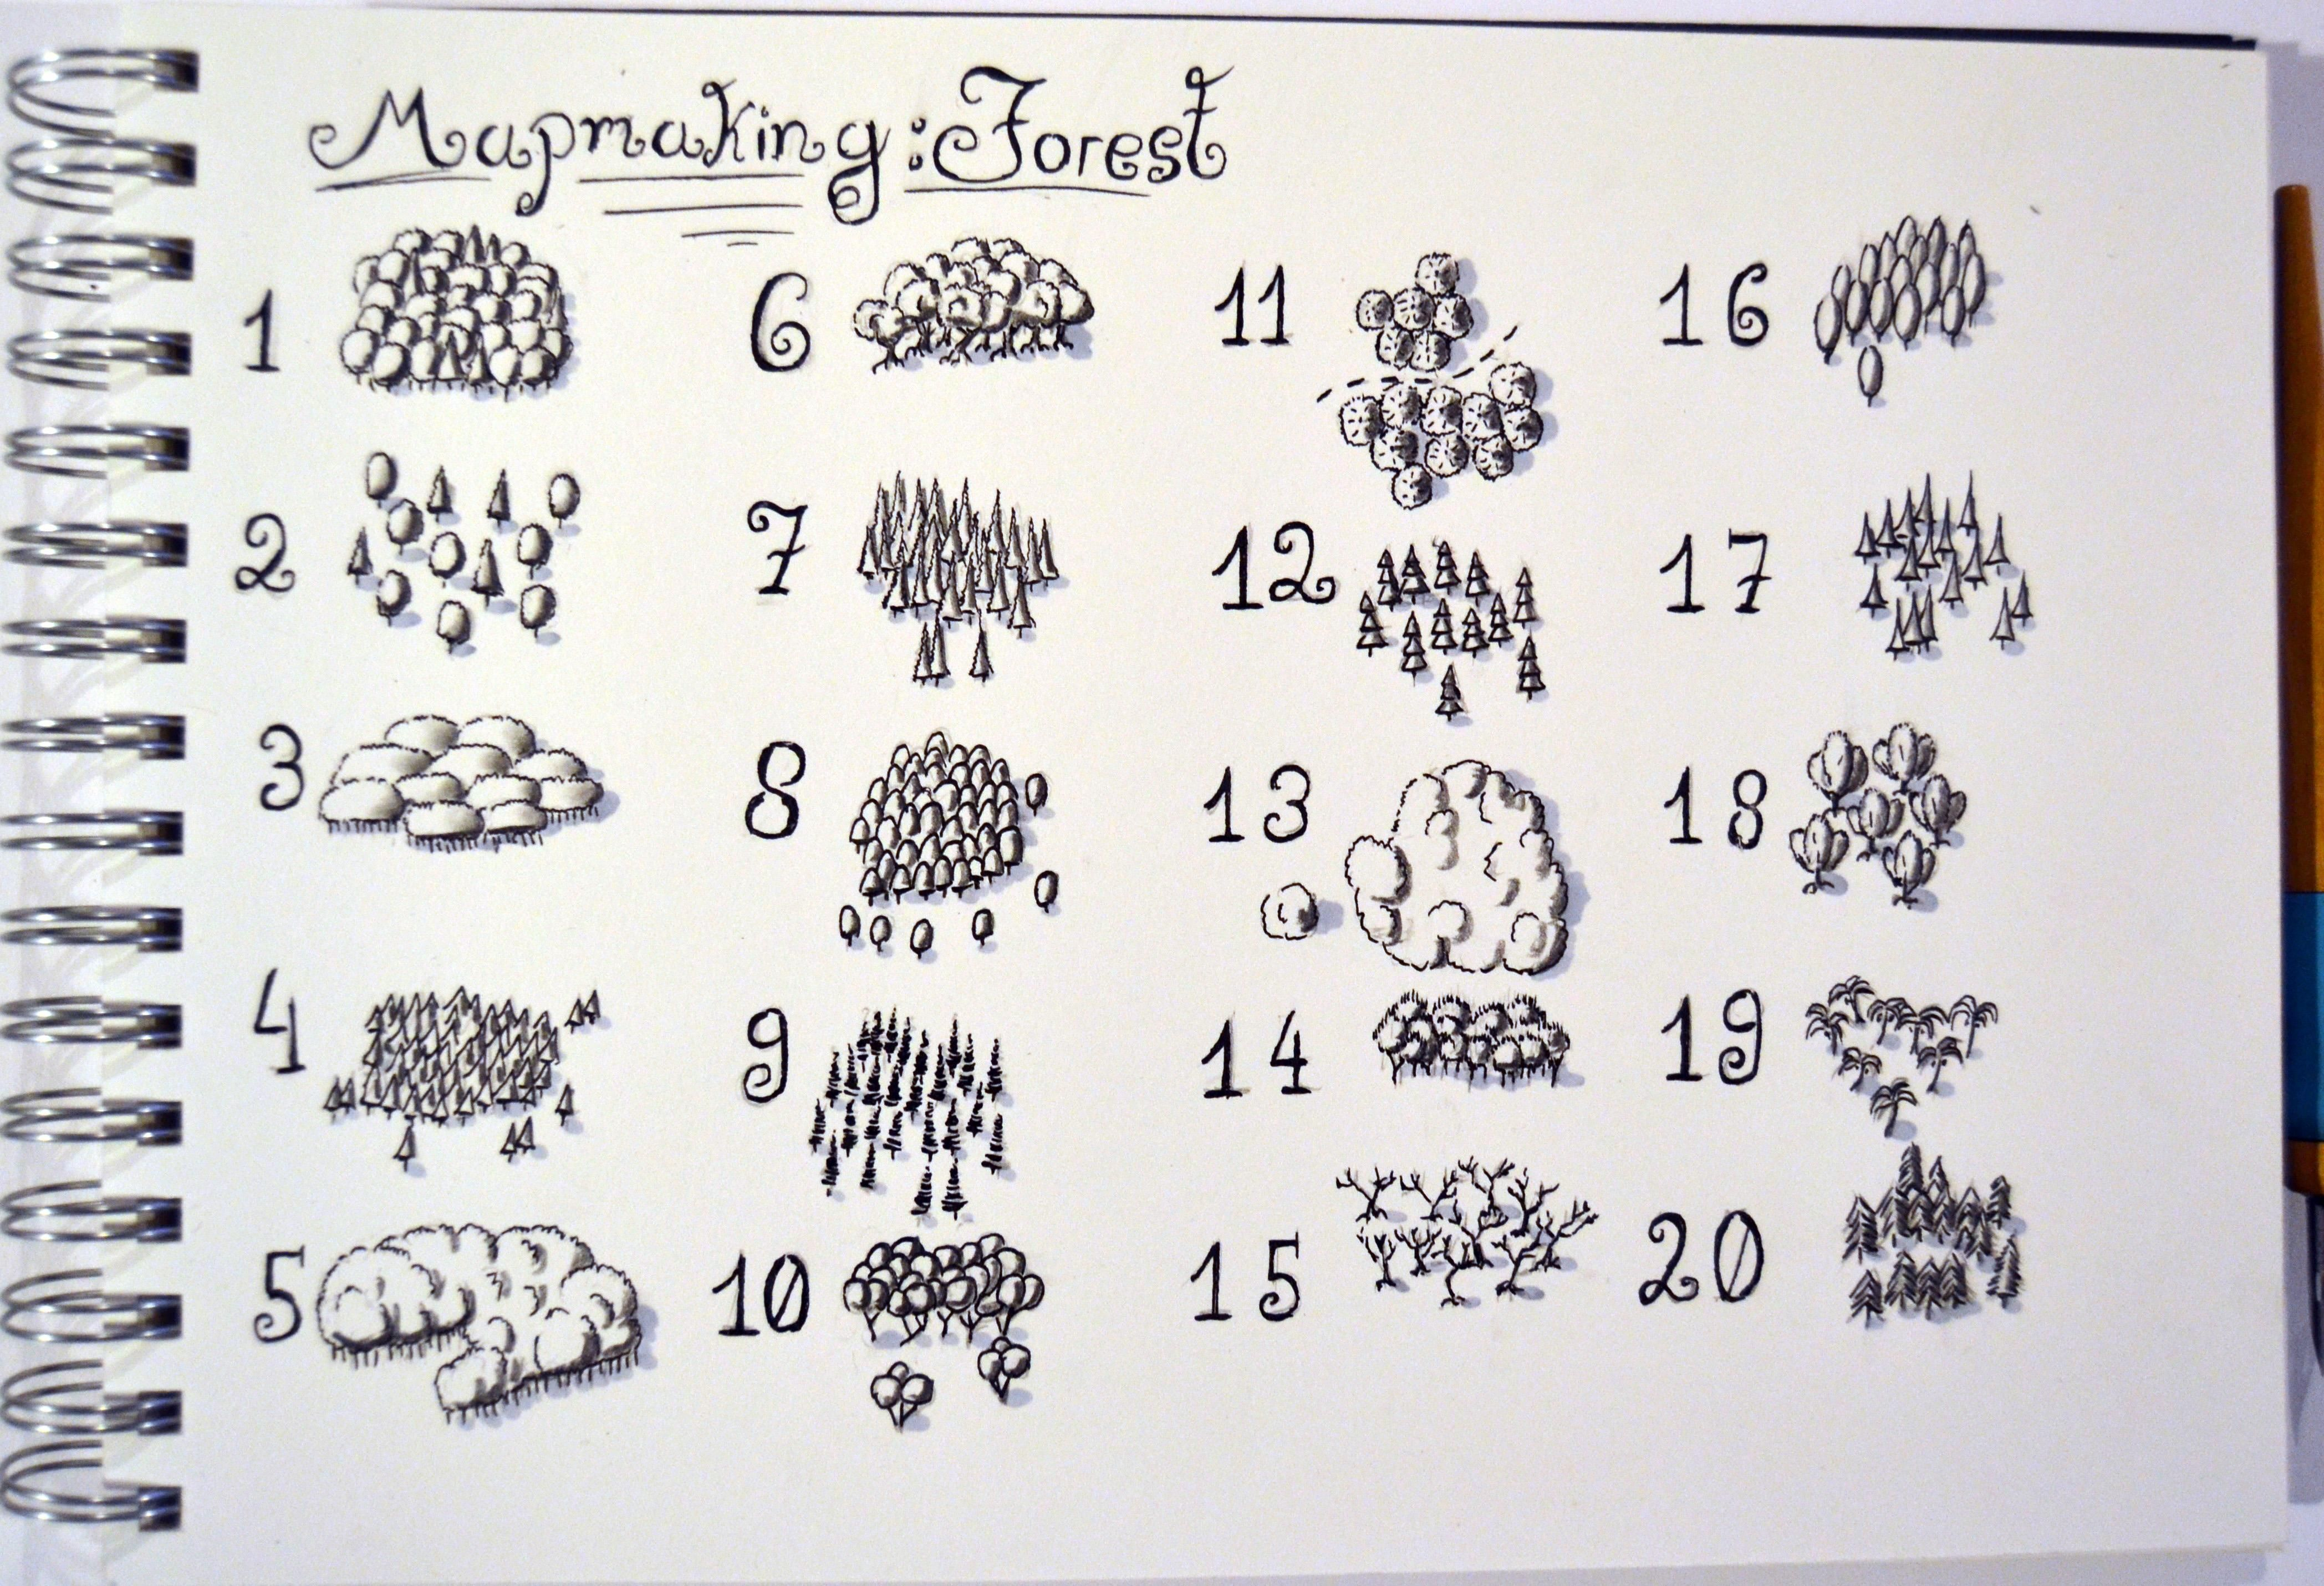 20 ways of drawing a forest mapmaking Fantasy map